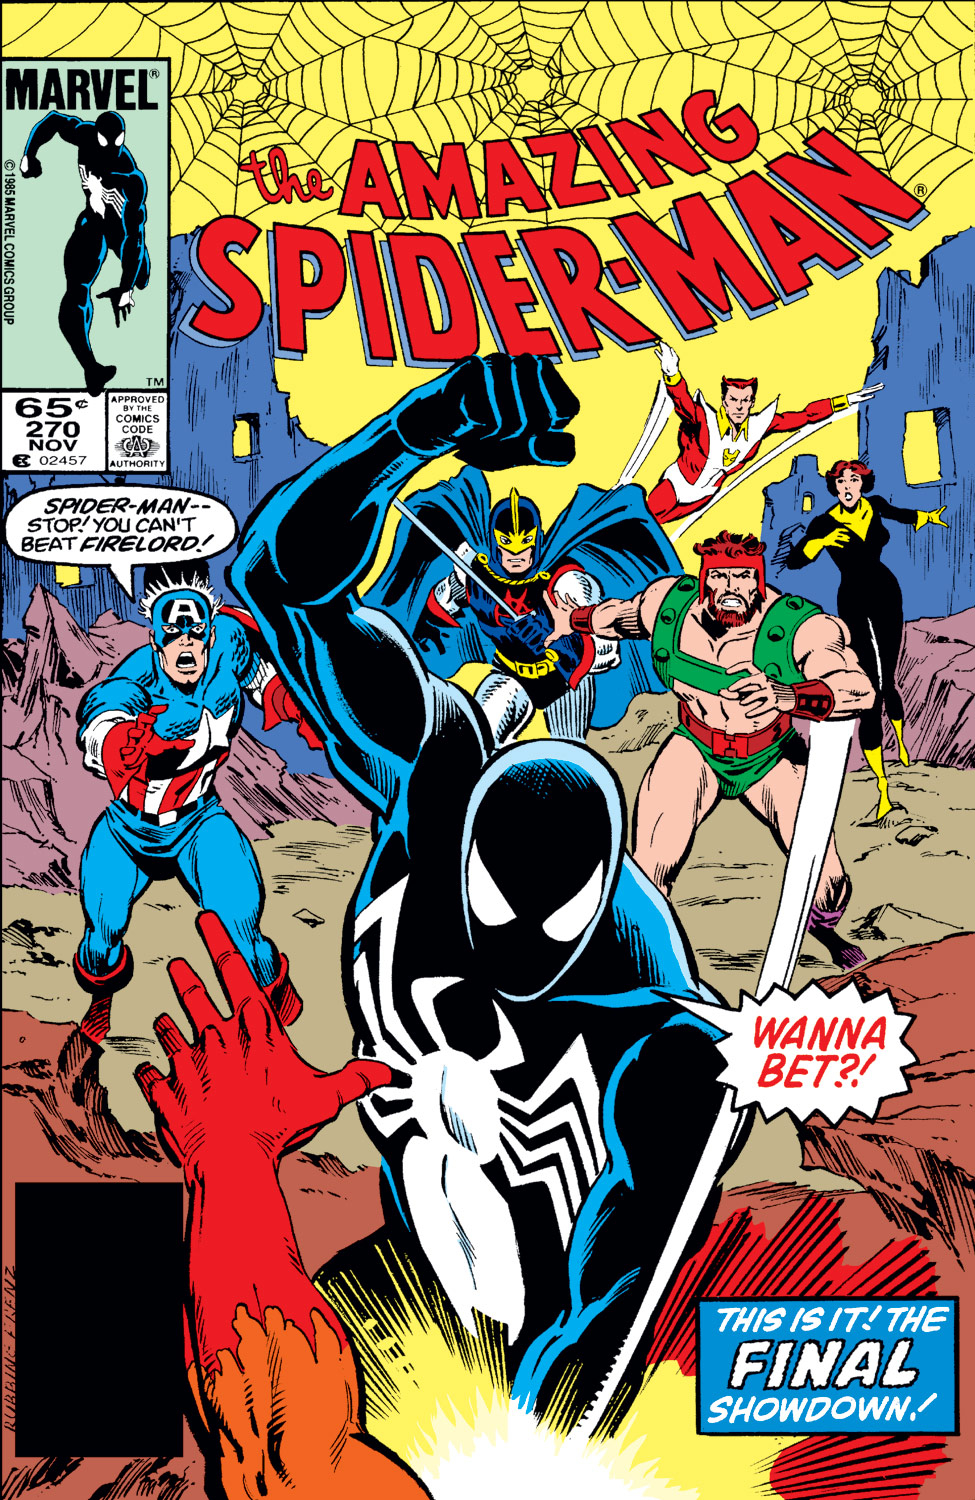 The Amazing Spider-Man (1963) 270 Page 1